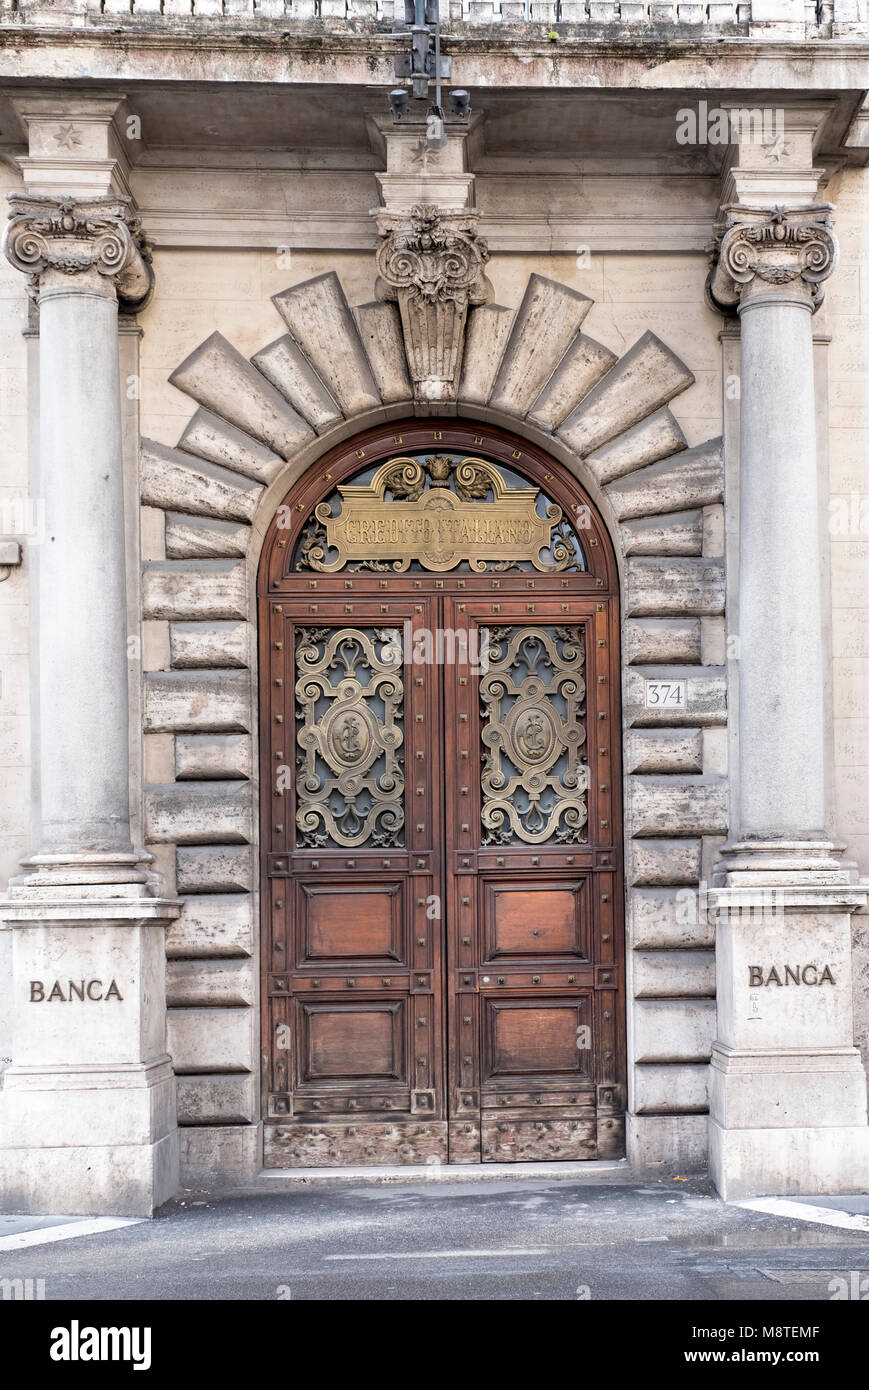 Tthe entrance area of a branch of the Italian bank 'Credito Italiano' in Rome - Stock Image